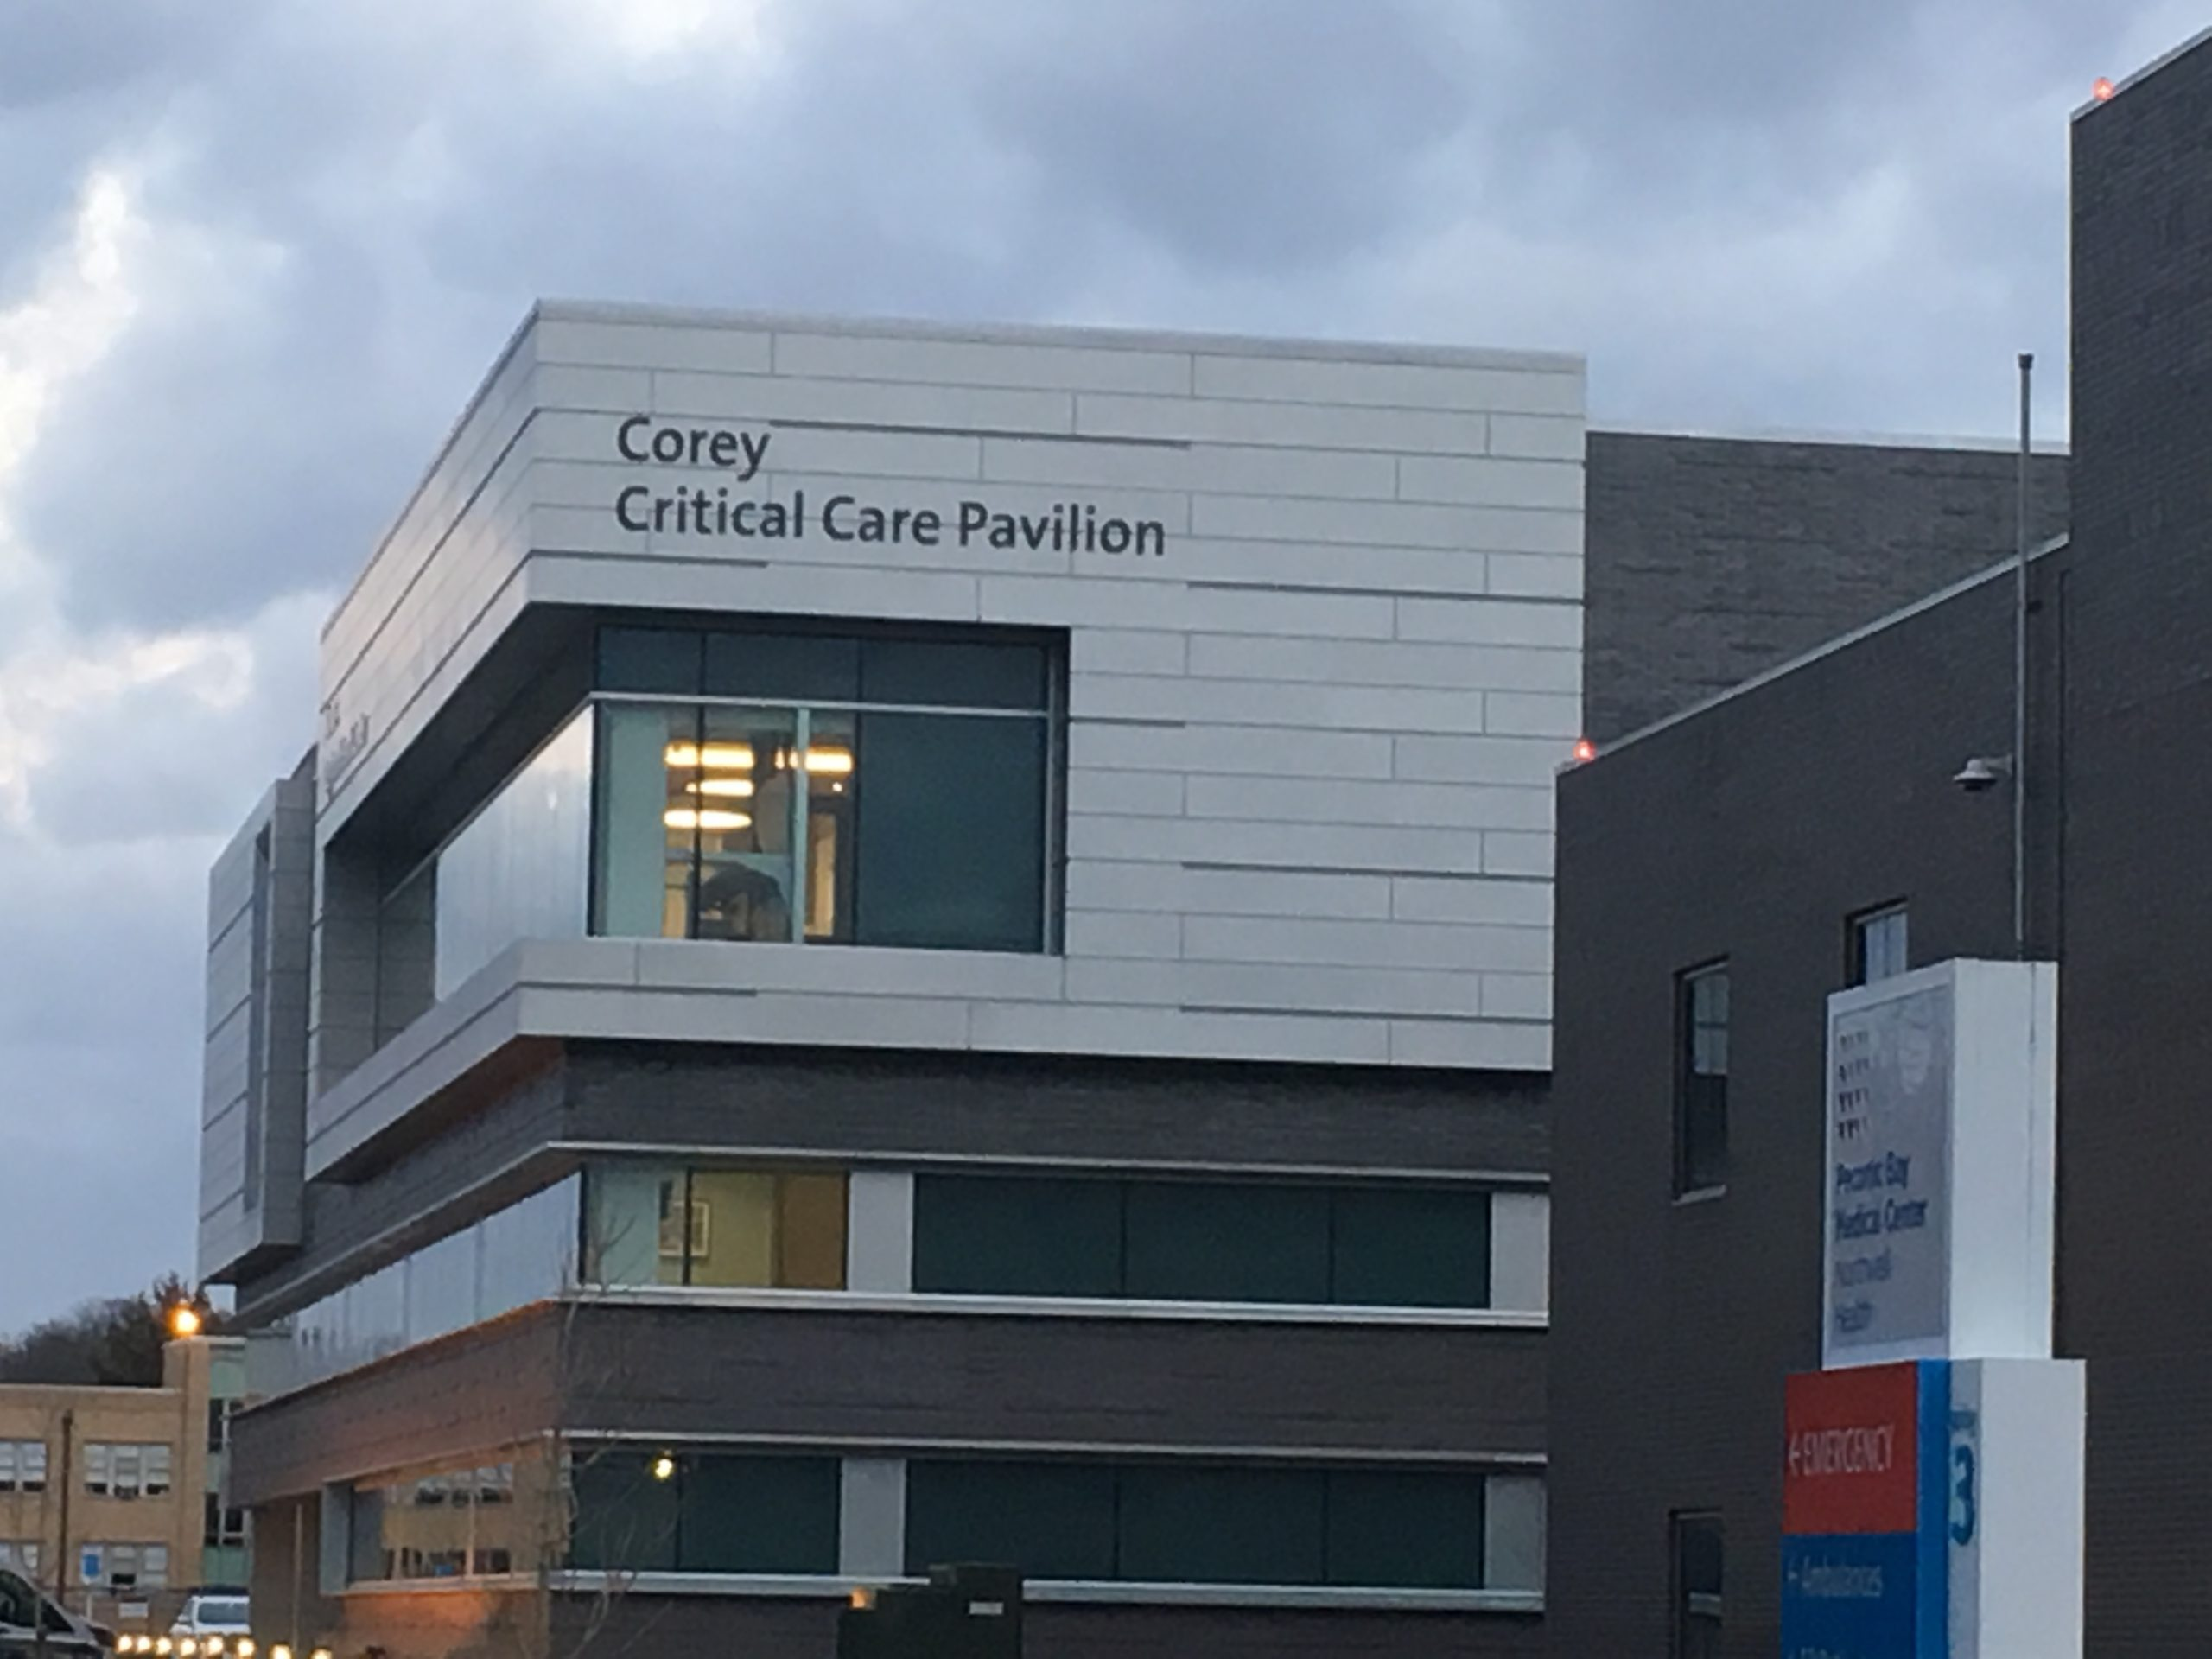 The Corey Critical Care Pavilion at Peconic Bay Medical Center. KITTY MERRILL